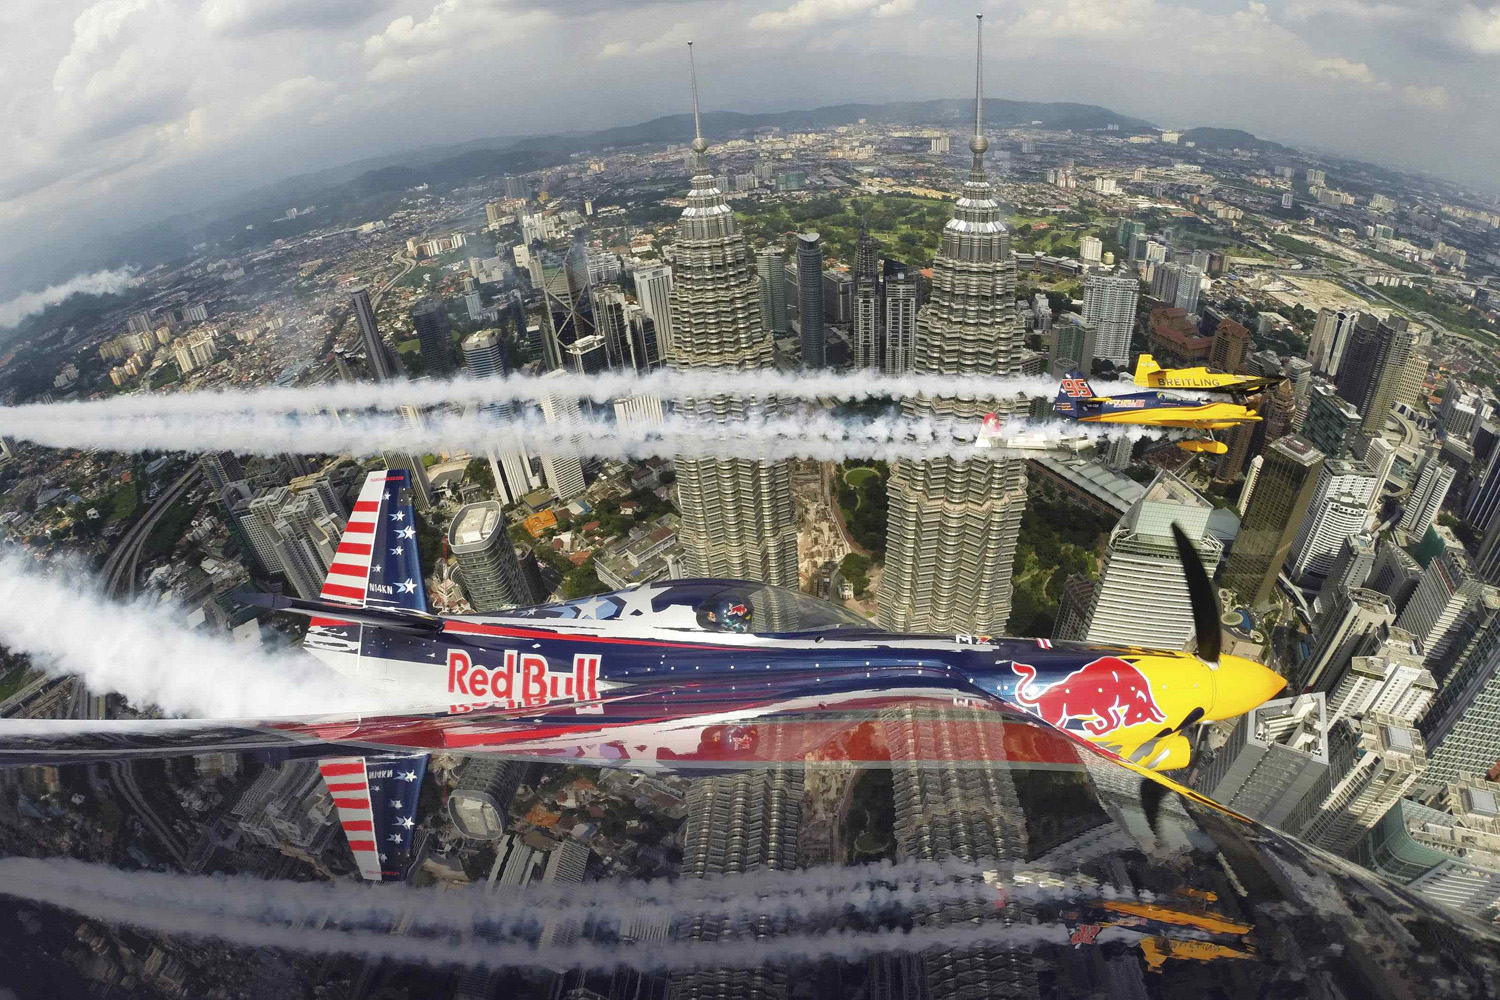 Kirby Chambliss of the U.S. flies in formation with Matt Hall of Australia, Yoshihide Muroya of Japan and Nigel Lamb of Britain prior to the third stage of the Red Bull Air Race World Championship in front of the Petronas Towers in Kuala Lumpur May 15, 2014.